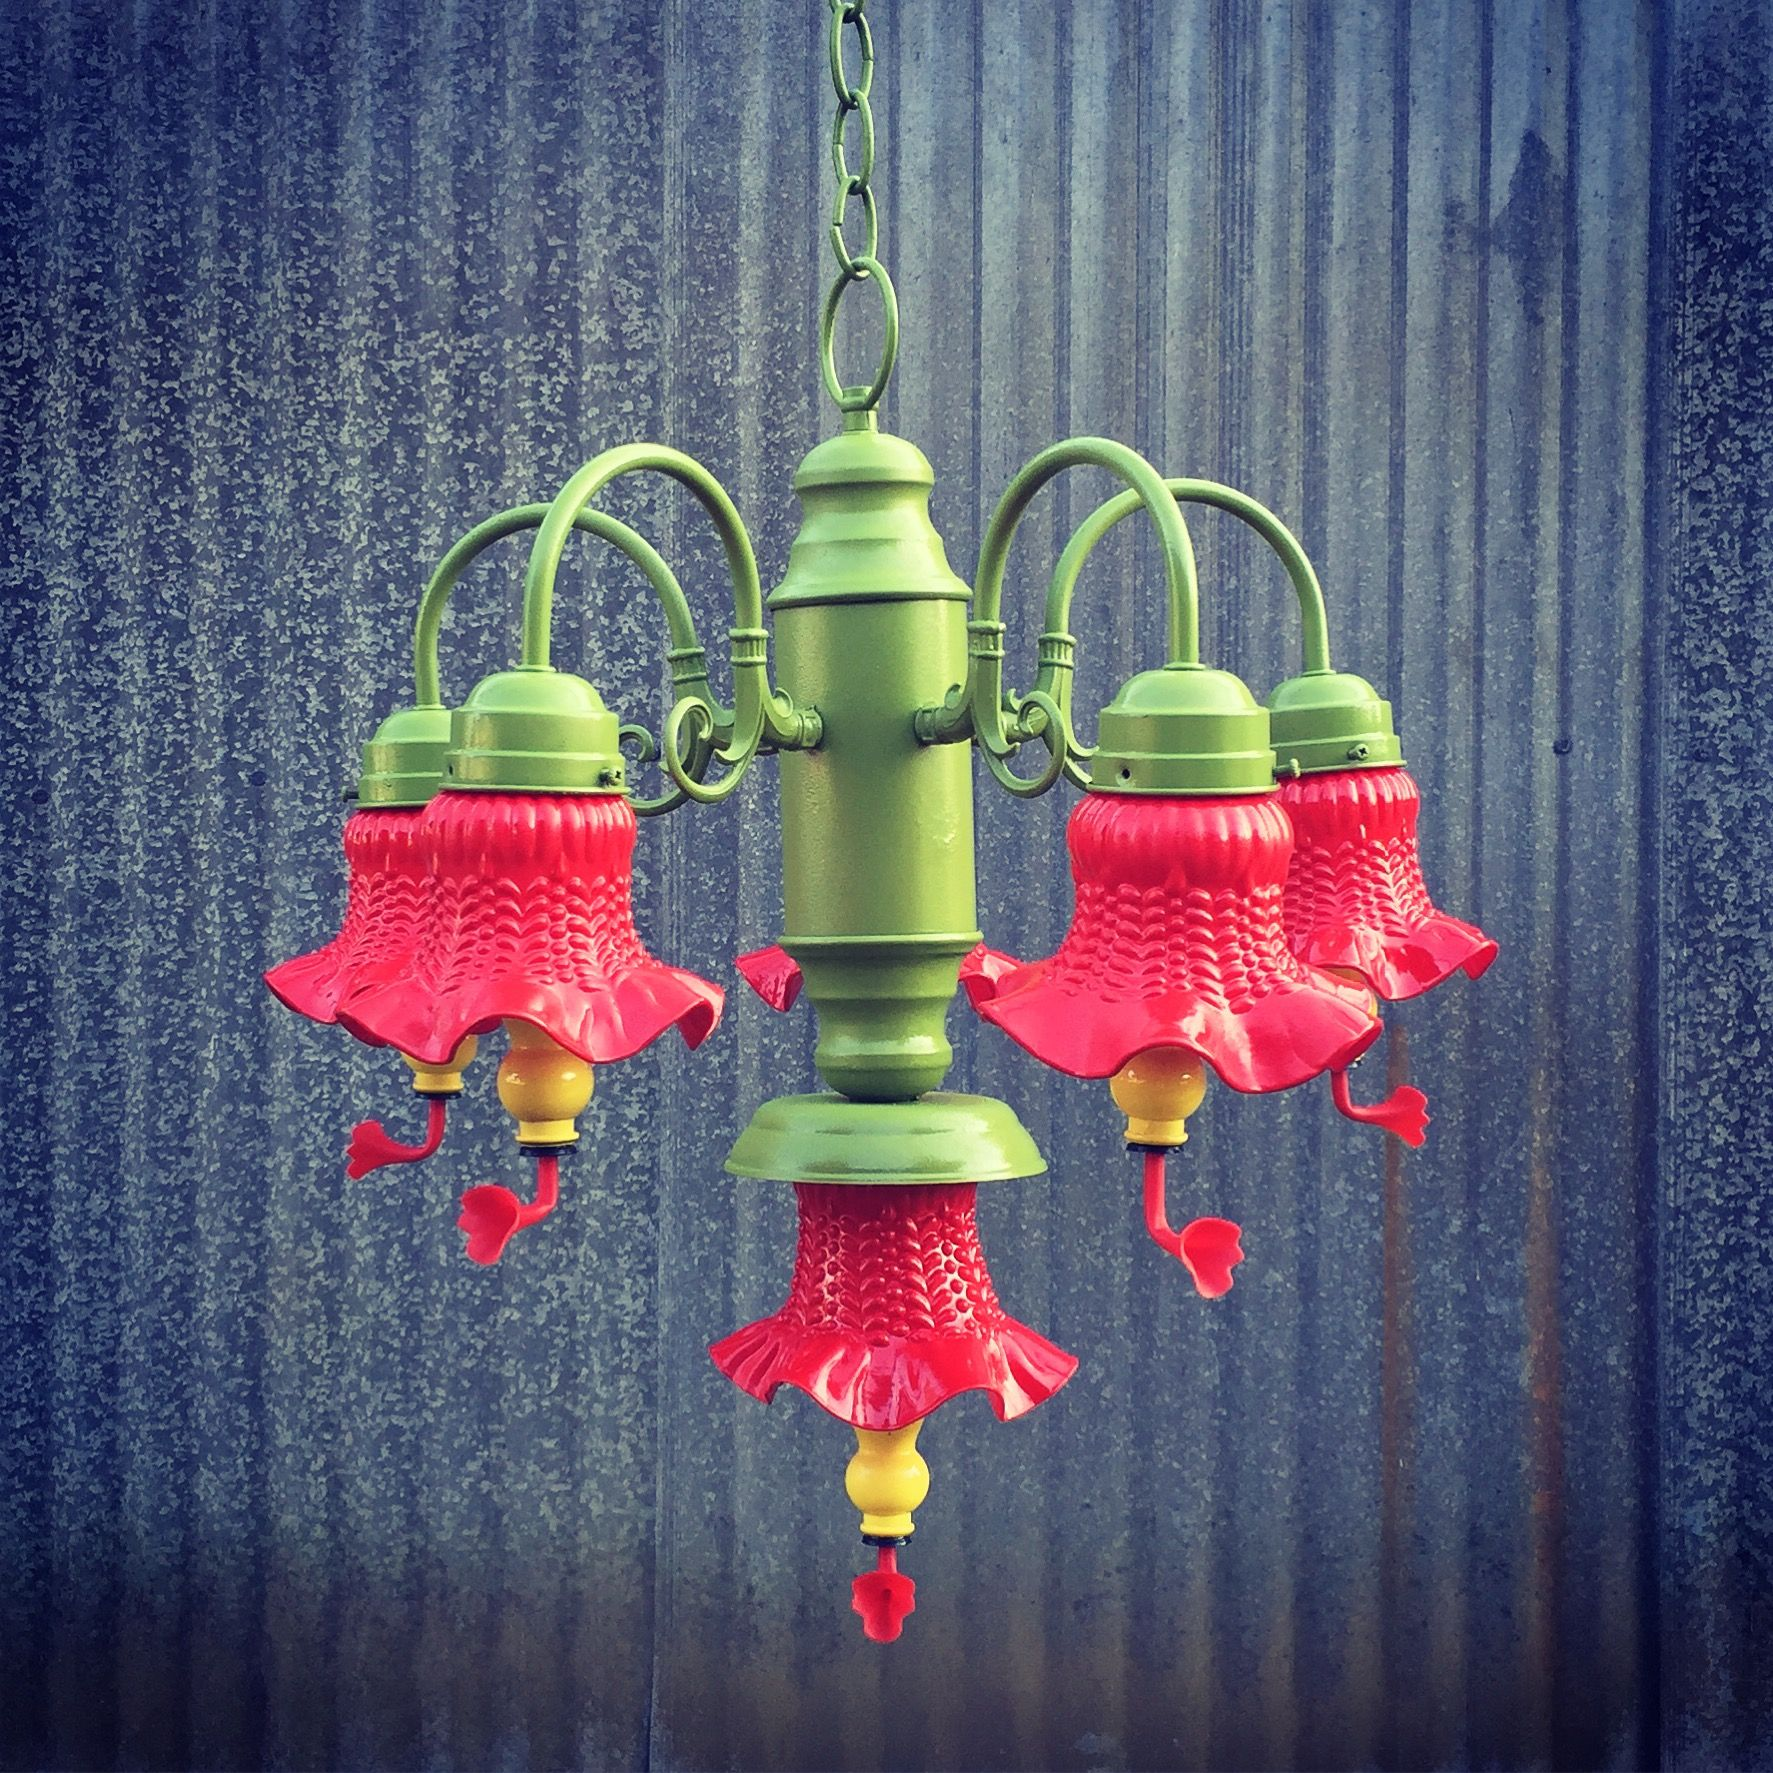 Hummingbird Feeder Chandelier Made By Yours Truly For A Sweet Friend Diyer Humming Bird Feeders Diy Hummingbird Feeder Hummingbird Garden